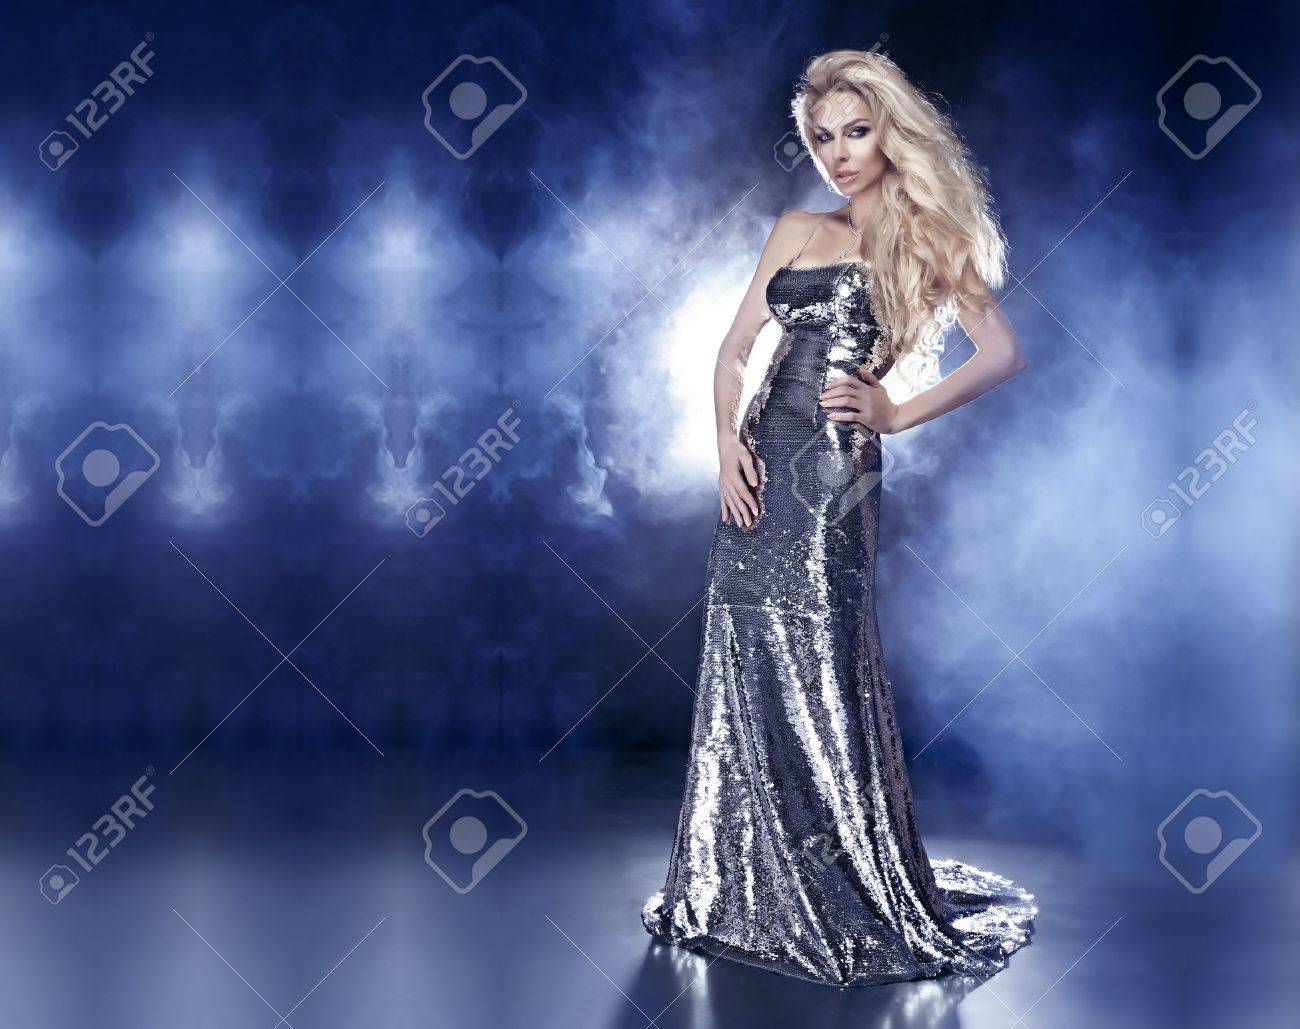 Beautiful young blonde woman posing in fashionable silver evening dress over the dark interior Stock Photo - 19502178